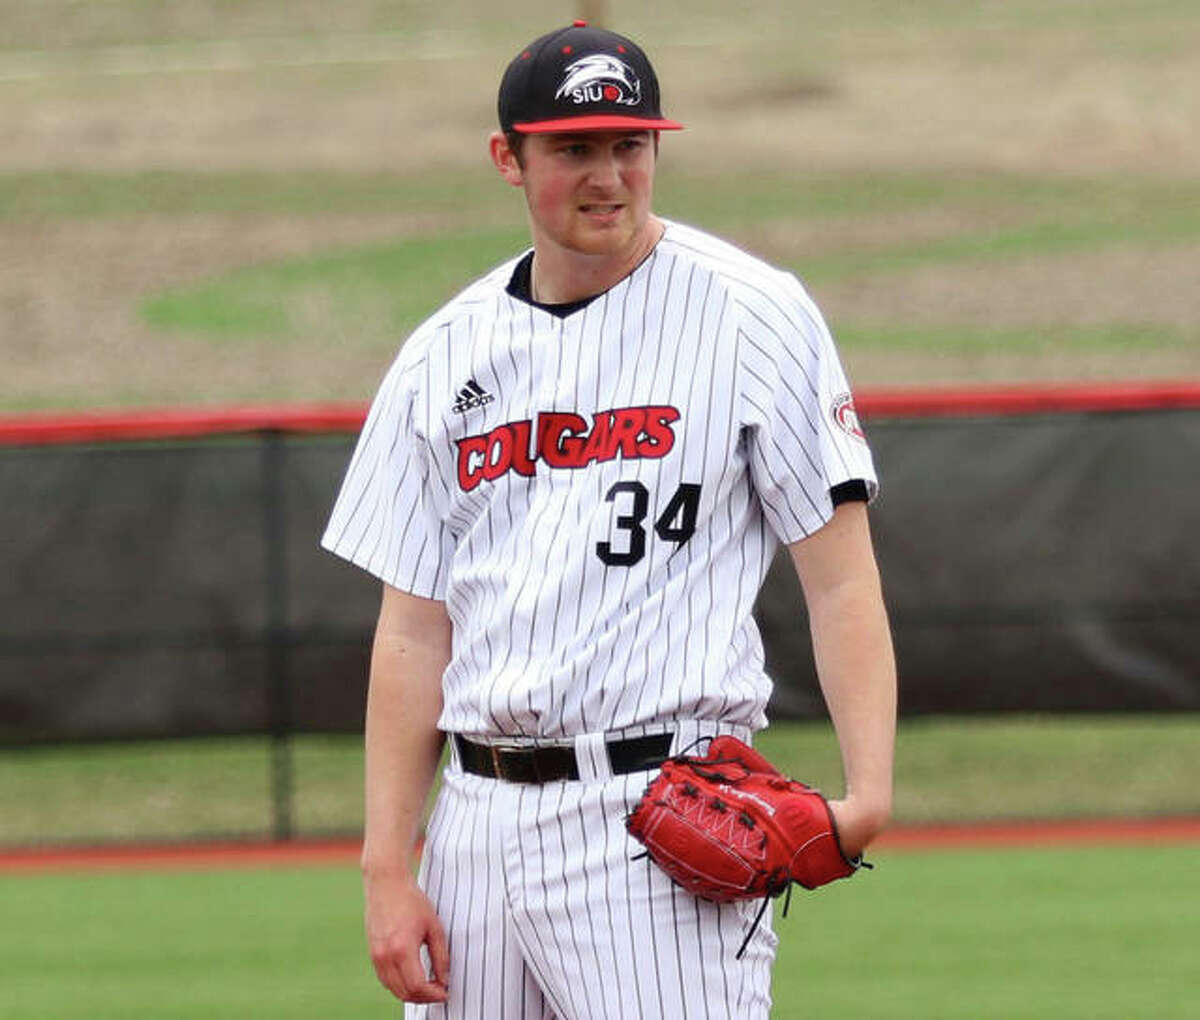 SIUE pitcher Collin Baumgarter peers in for a sign during a start in 2019. Baumgartner underwent elbow surgery last week and will miss the 2021 season.